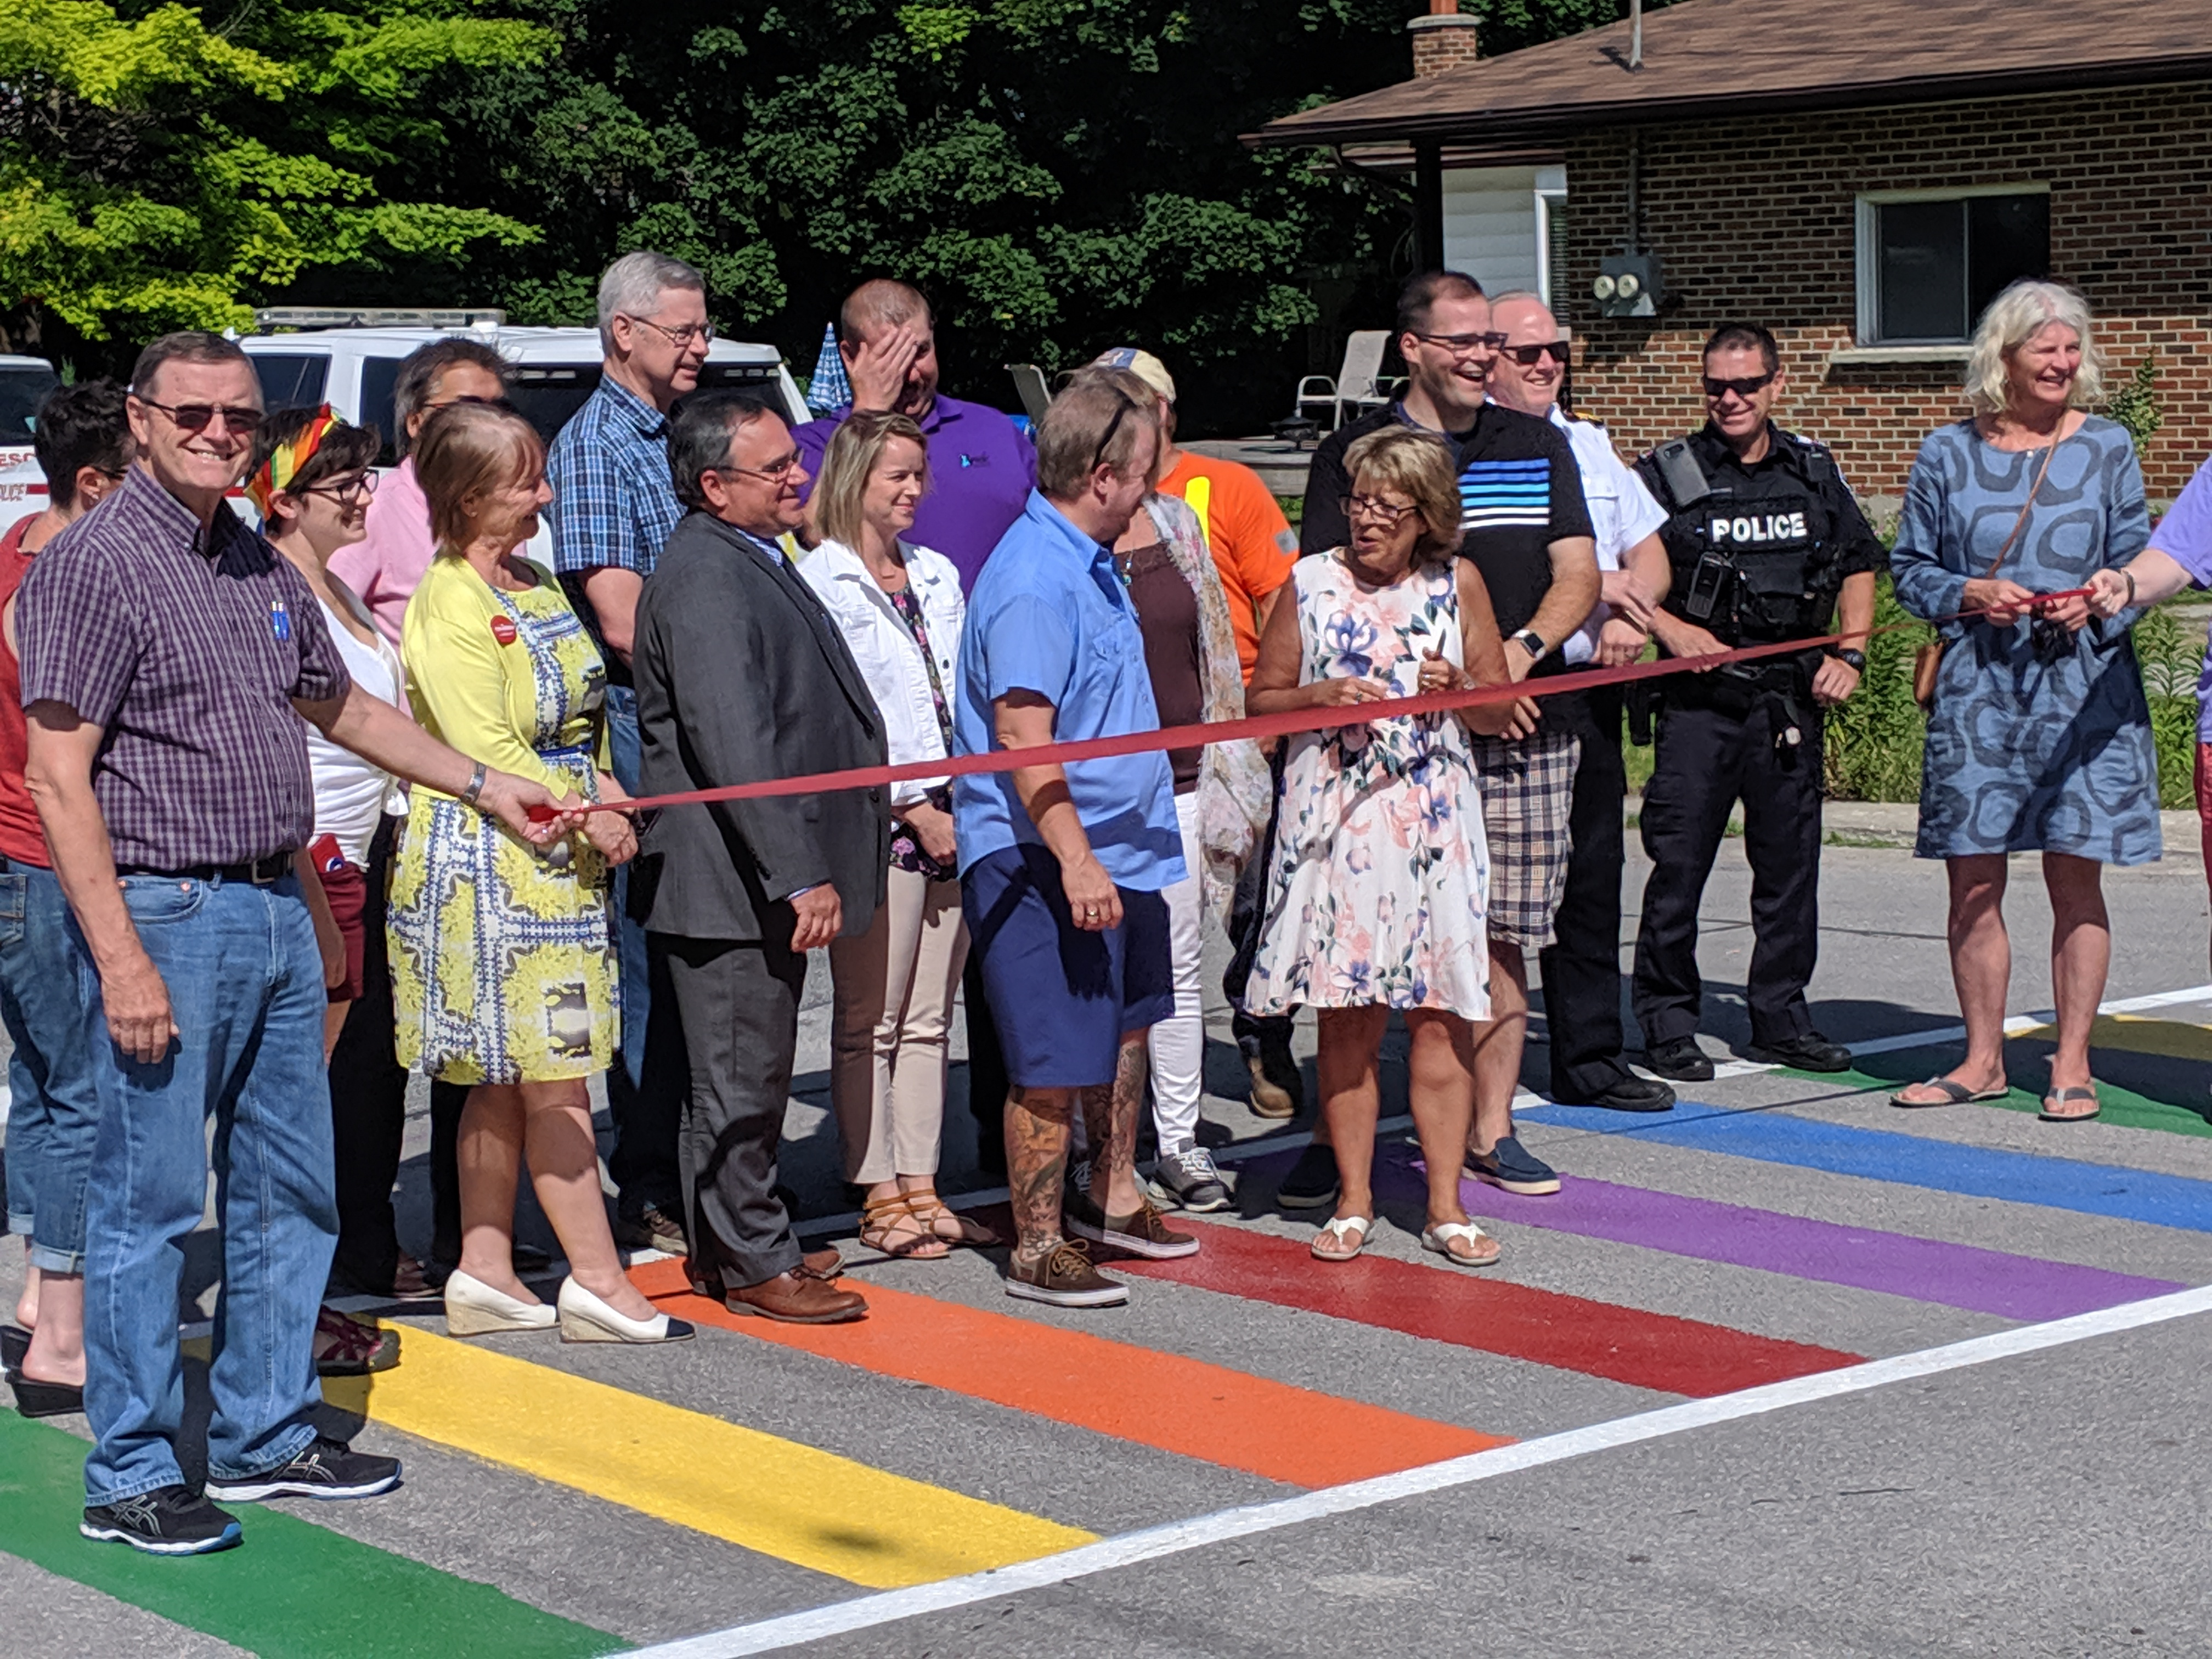 Rainbow crossing in Cannington featured in video from Uxbridge group